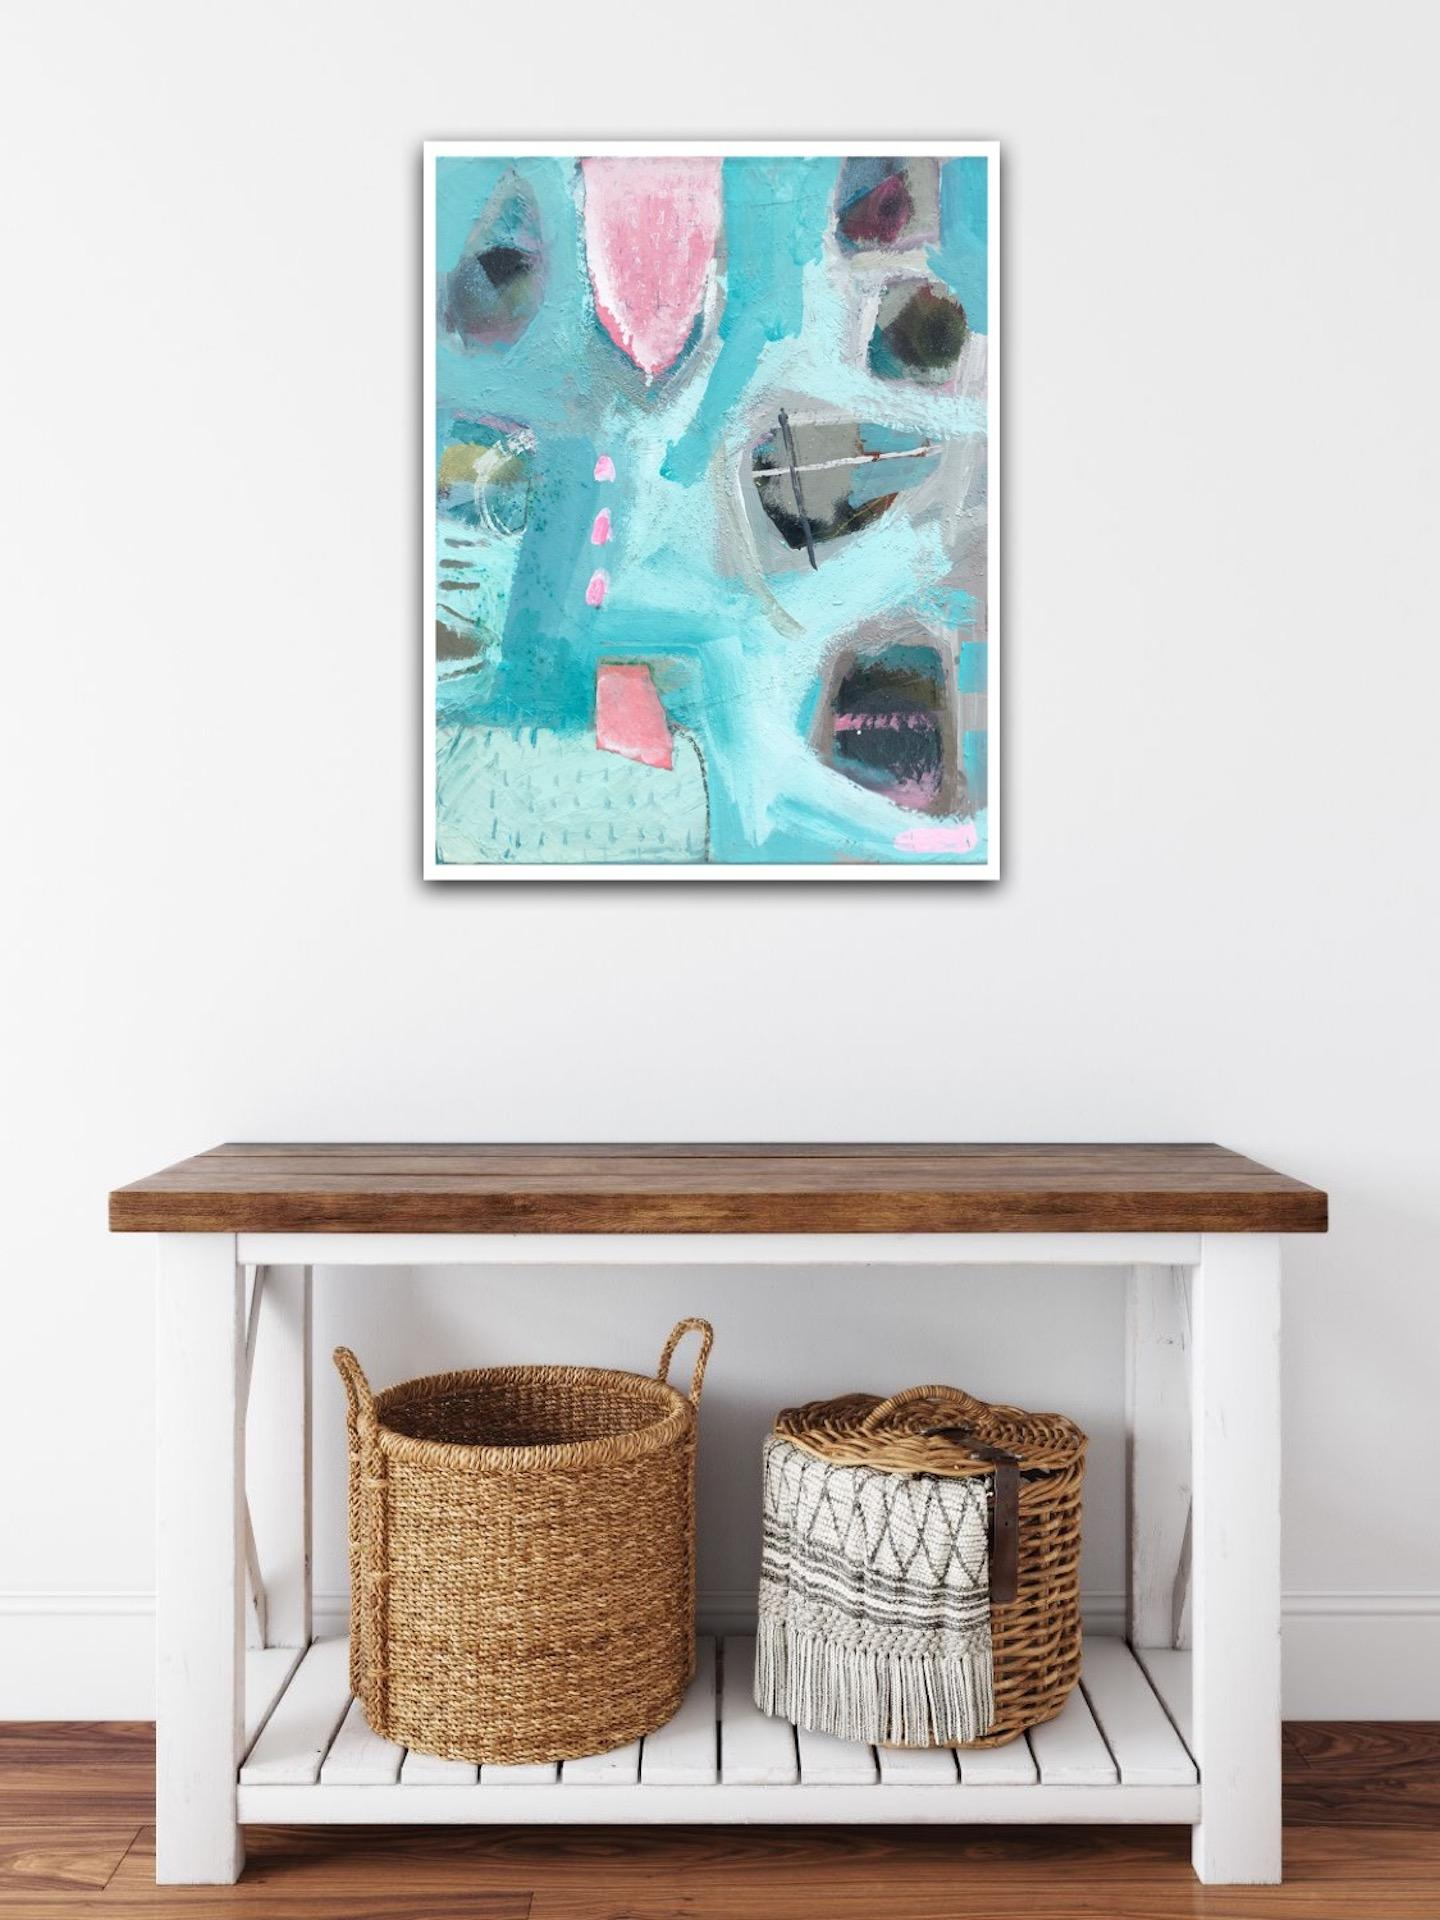 Keynance cove, Maggie LaPorte Banks, Affordable Abstract Painting, Original Art